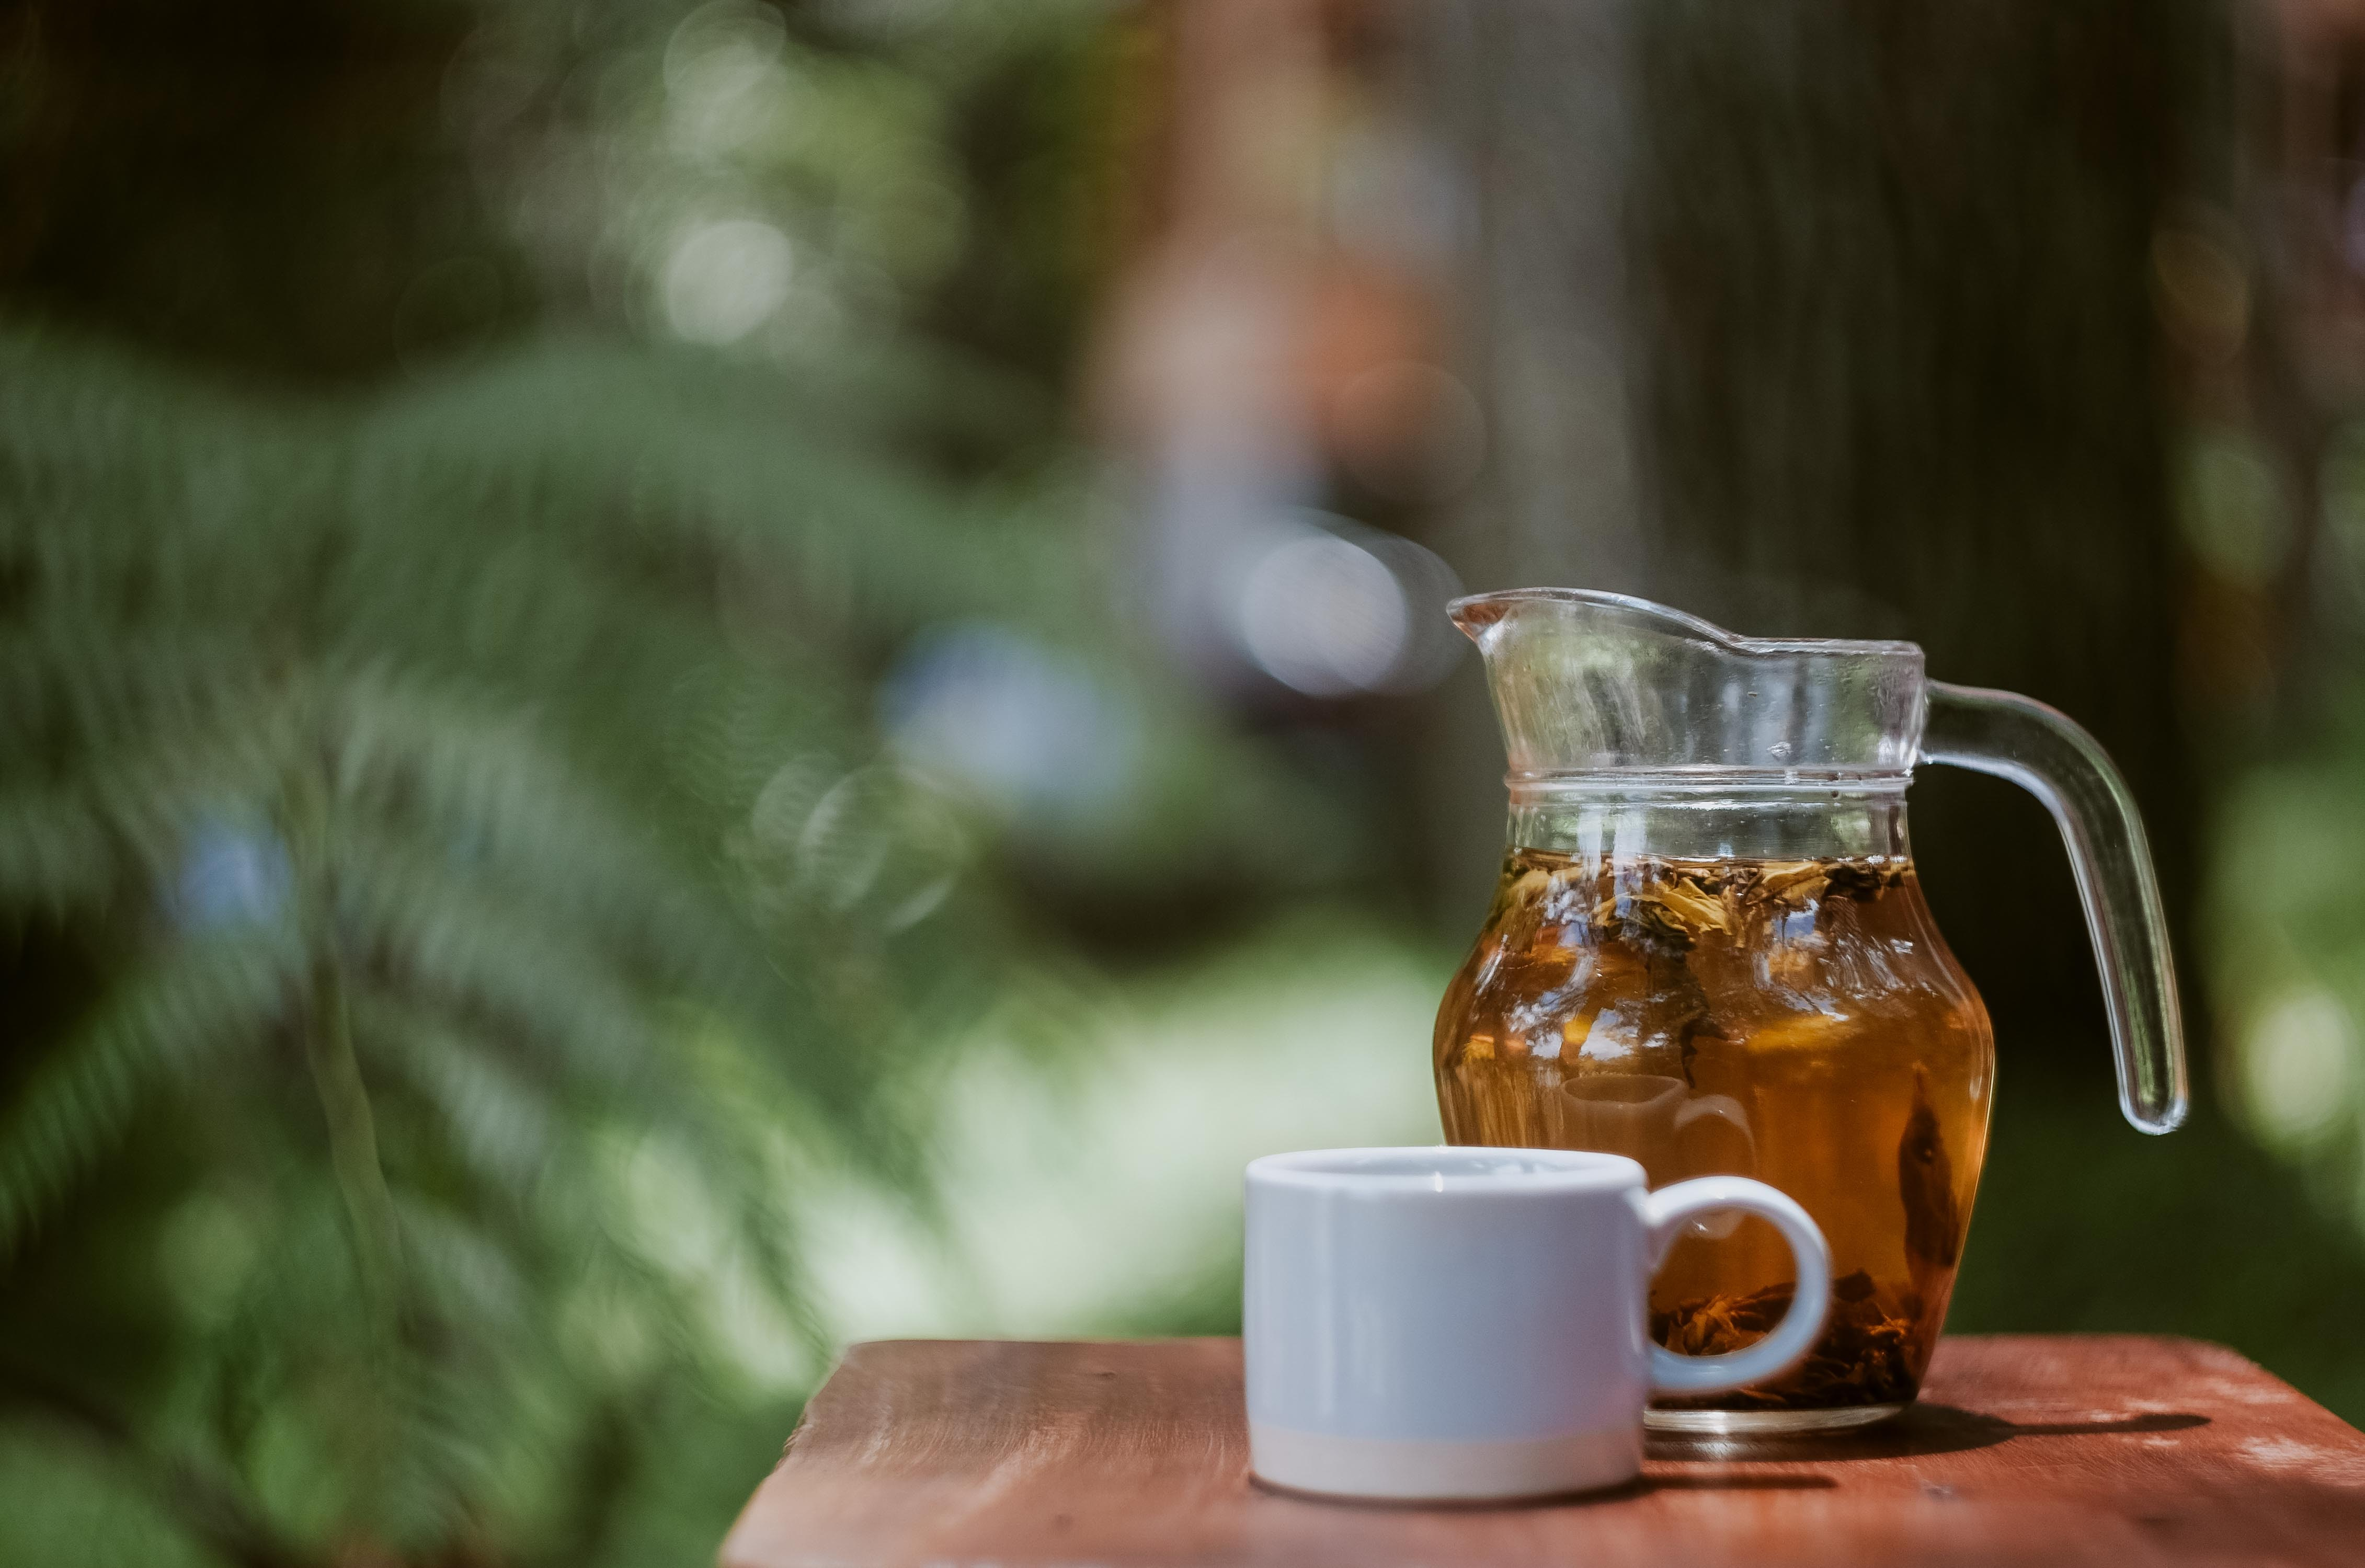 A pitcher of tea and a white mug on a wooden table